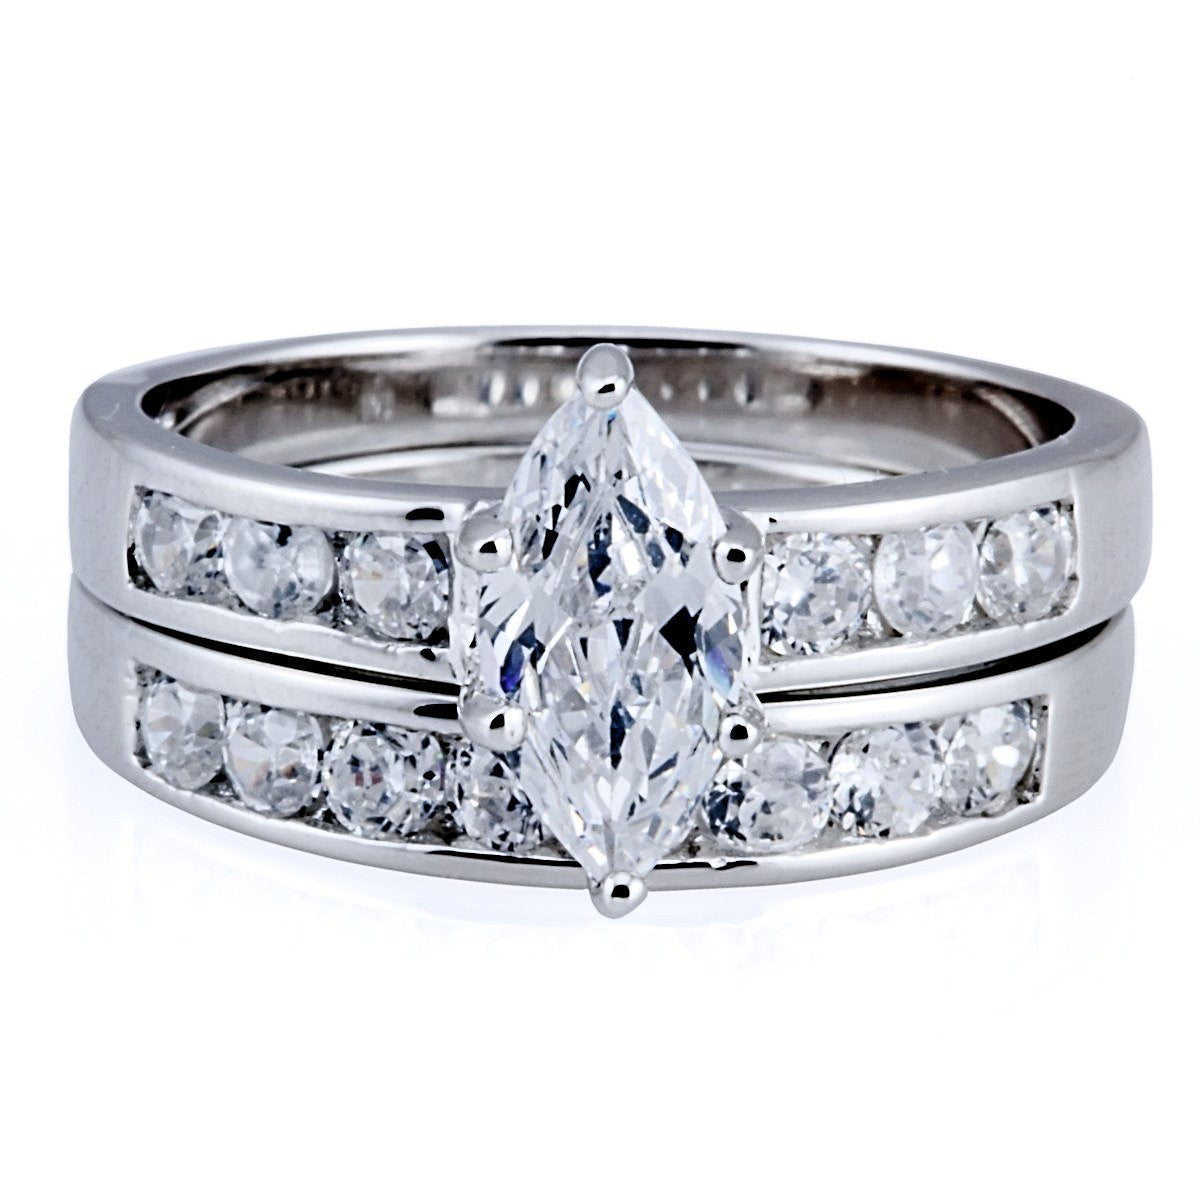 theresa 184c marquise cut russian ice cz diamond wedding ring set 1000jewelscom - Marquis Wedding Ring